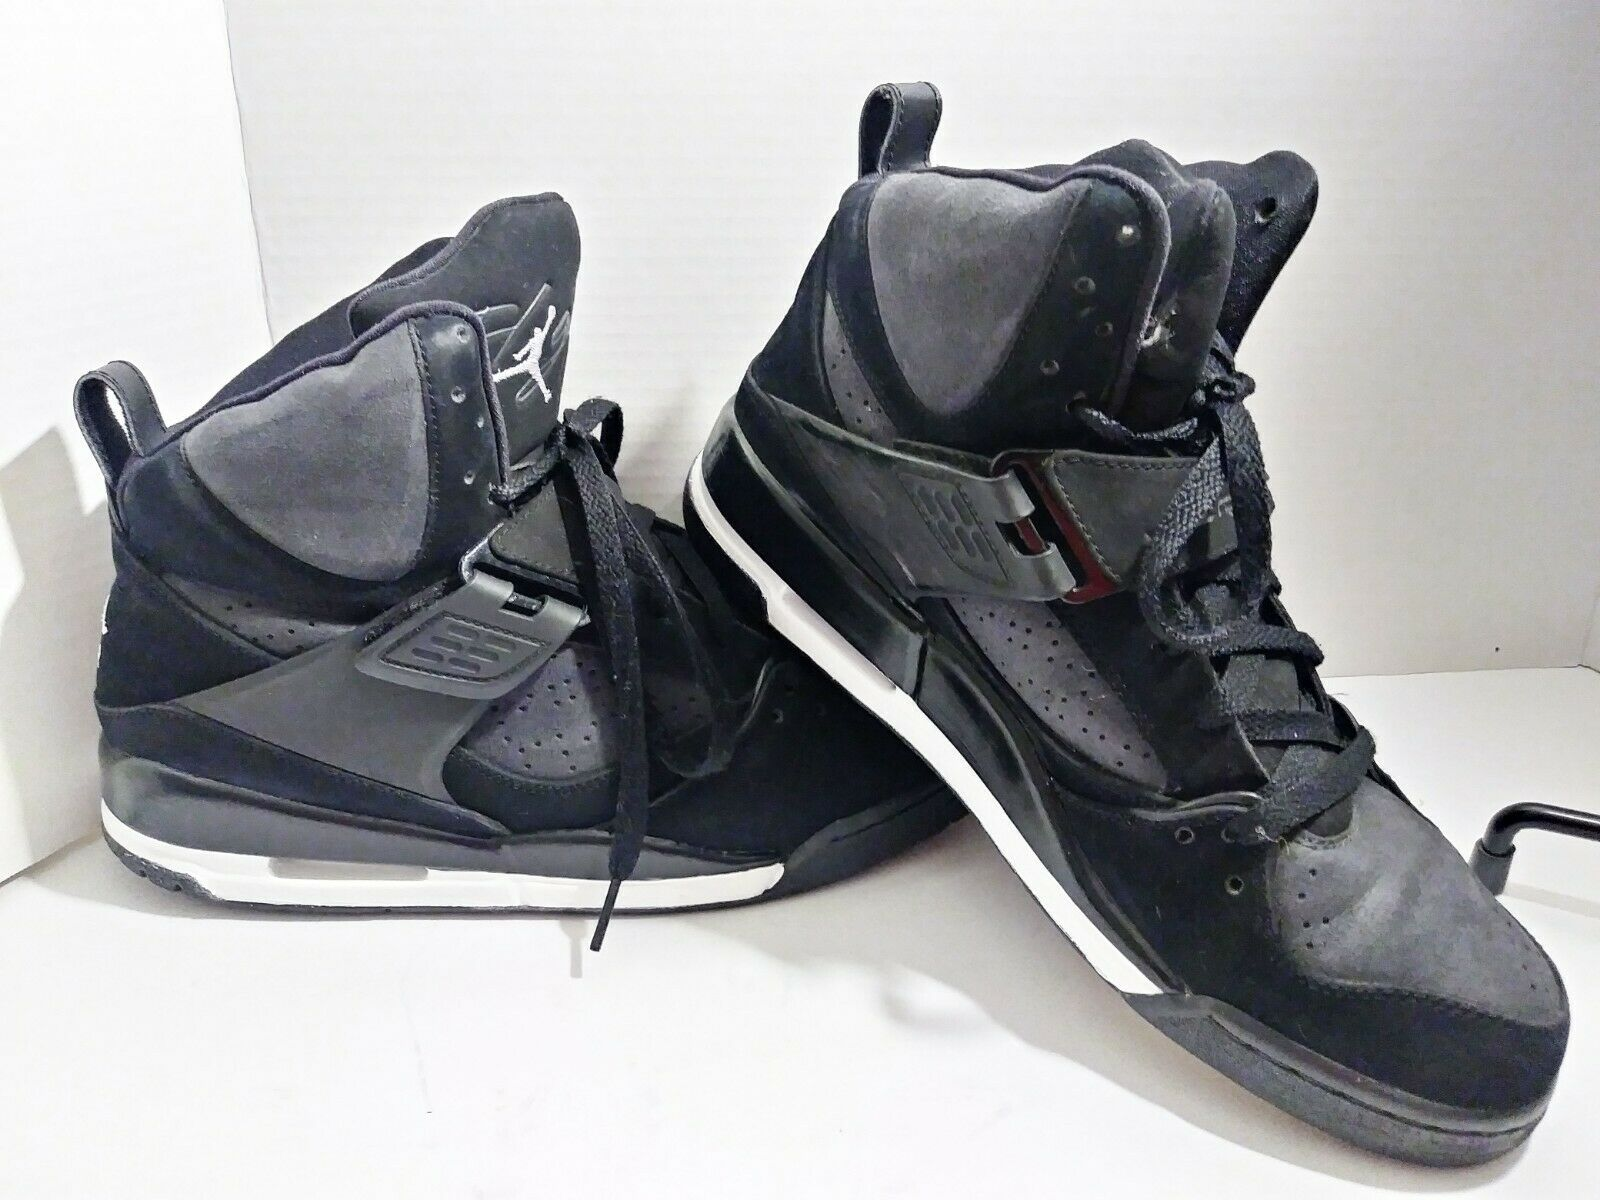 AIR JORDAN FLIGHT 45 HIGH 384519-012 Black   White-Dark Charcoal Size 10.5